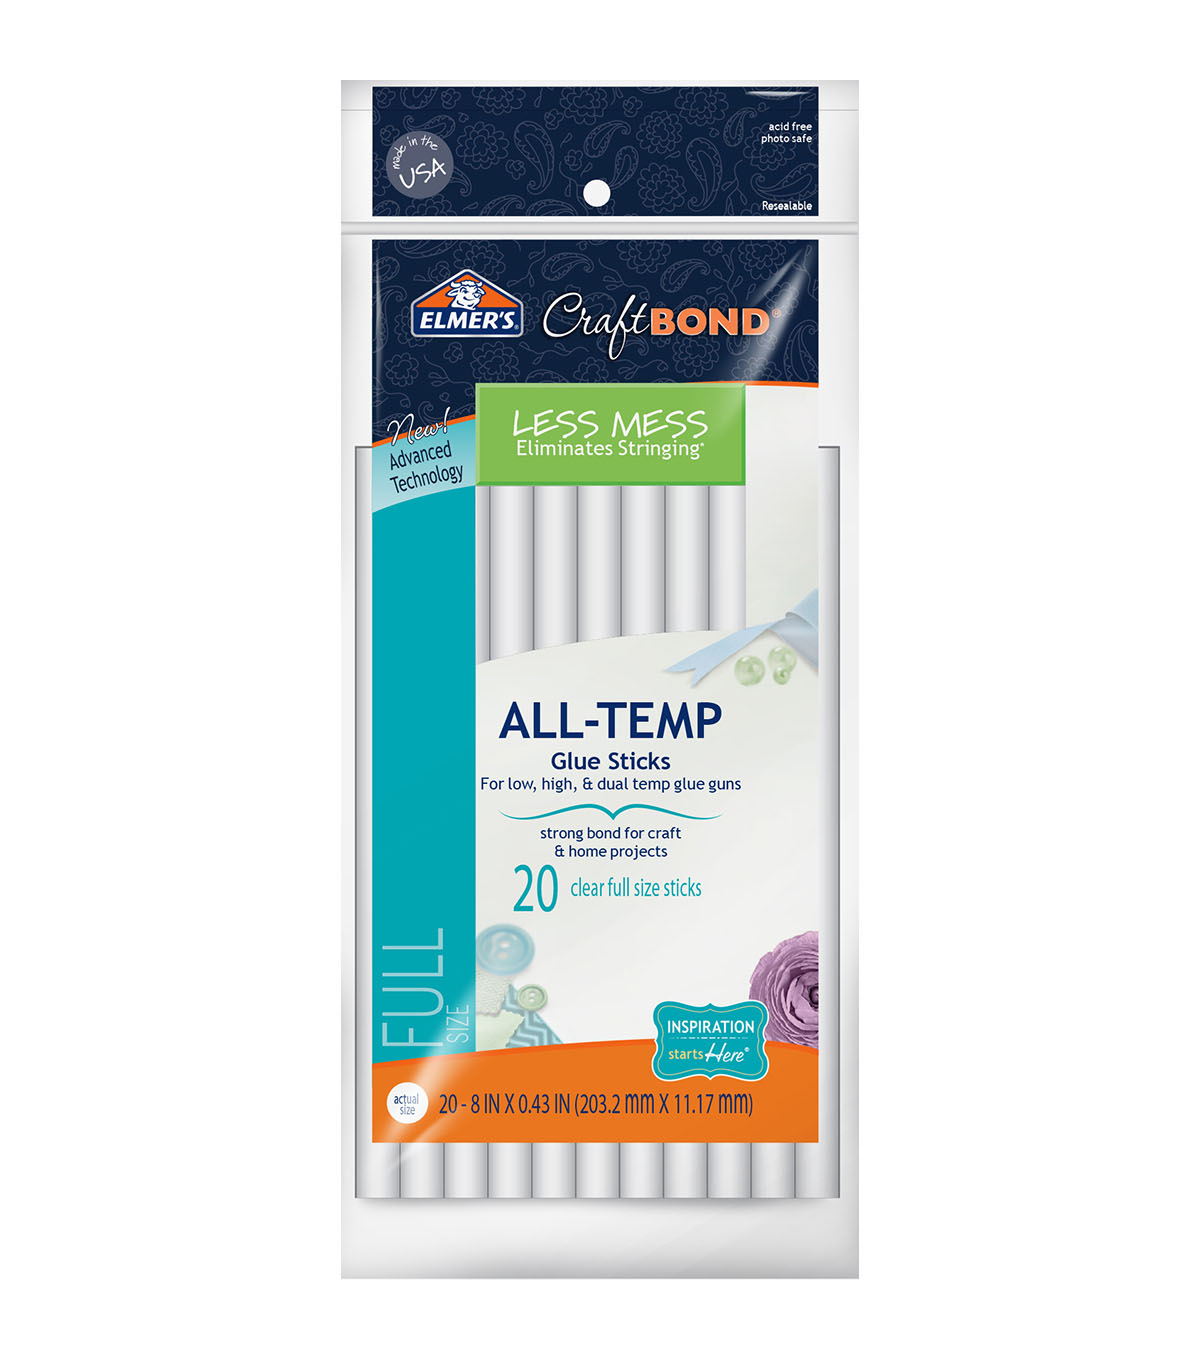 Elmer\u0027s CraftBond 8\u0022x0.43\u0022 20 pk Less Mess All-Temp Glue Sticks